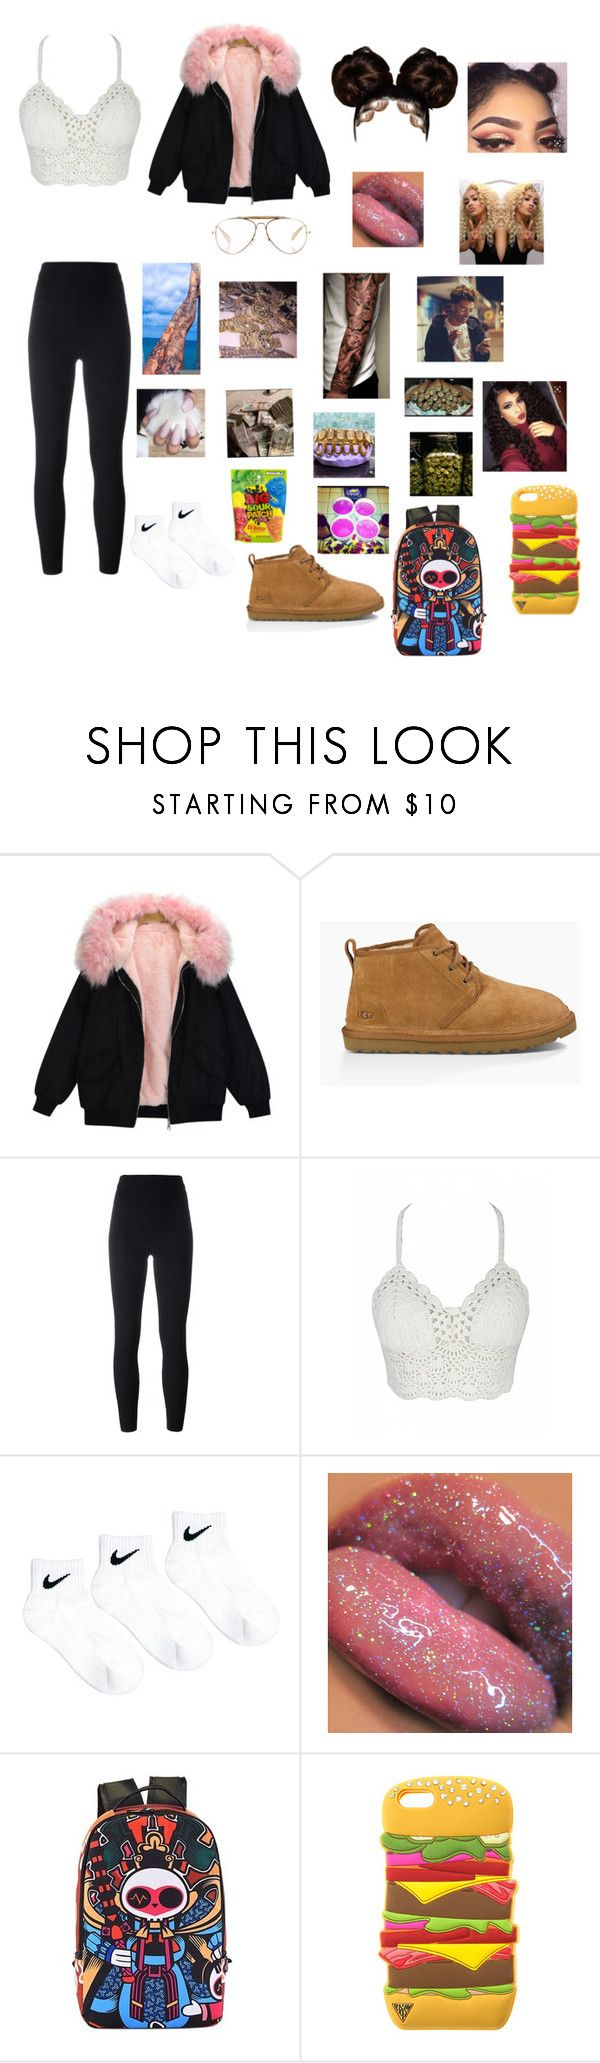 """""""We Get High"""" by cocorai ❤ liked on Polyvore featuring UGG Australia, Yeezy by Kanye West, NIKE and CÉLINE"""